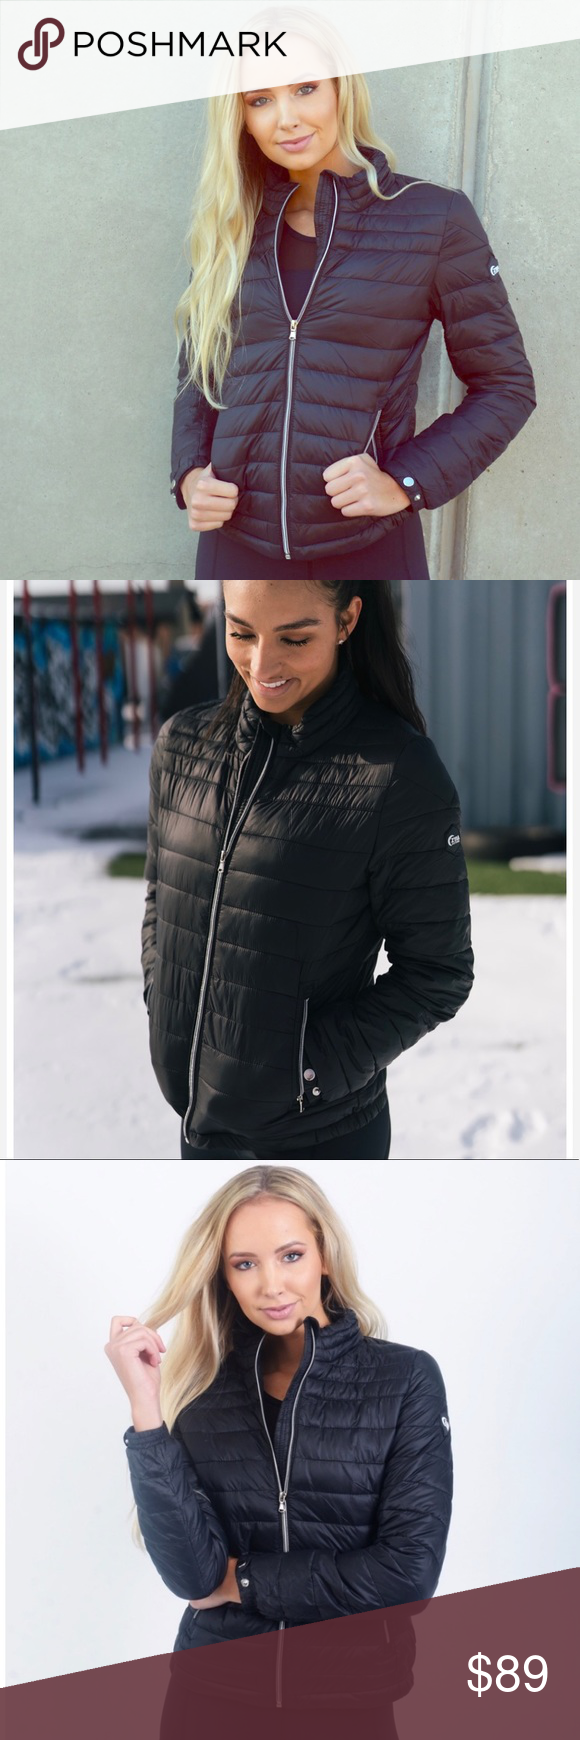 Super Cute Zyia Black Whistler Puffer Jacket Fashion Clothes Design Fashion Trends [ 1740 x 580 Pixel ]